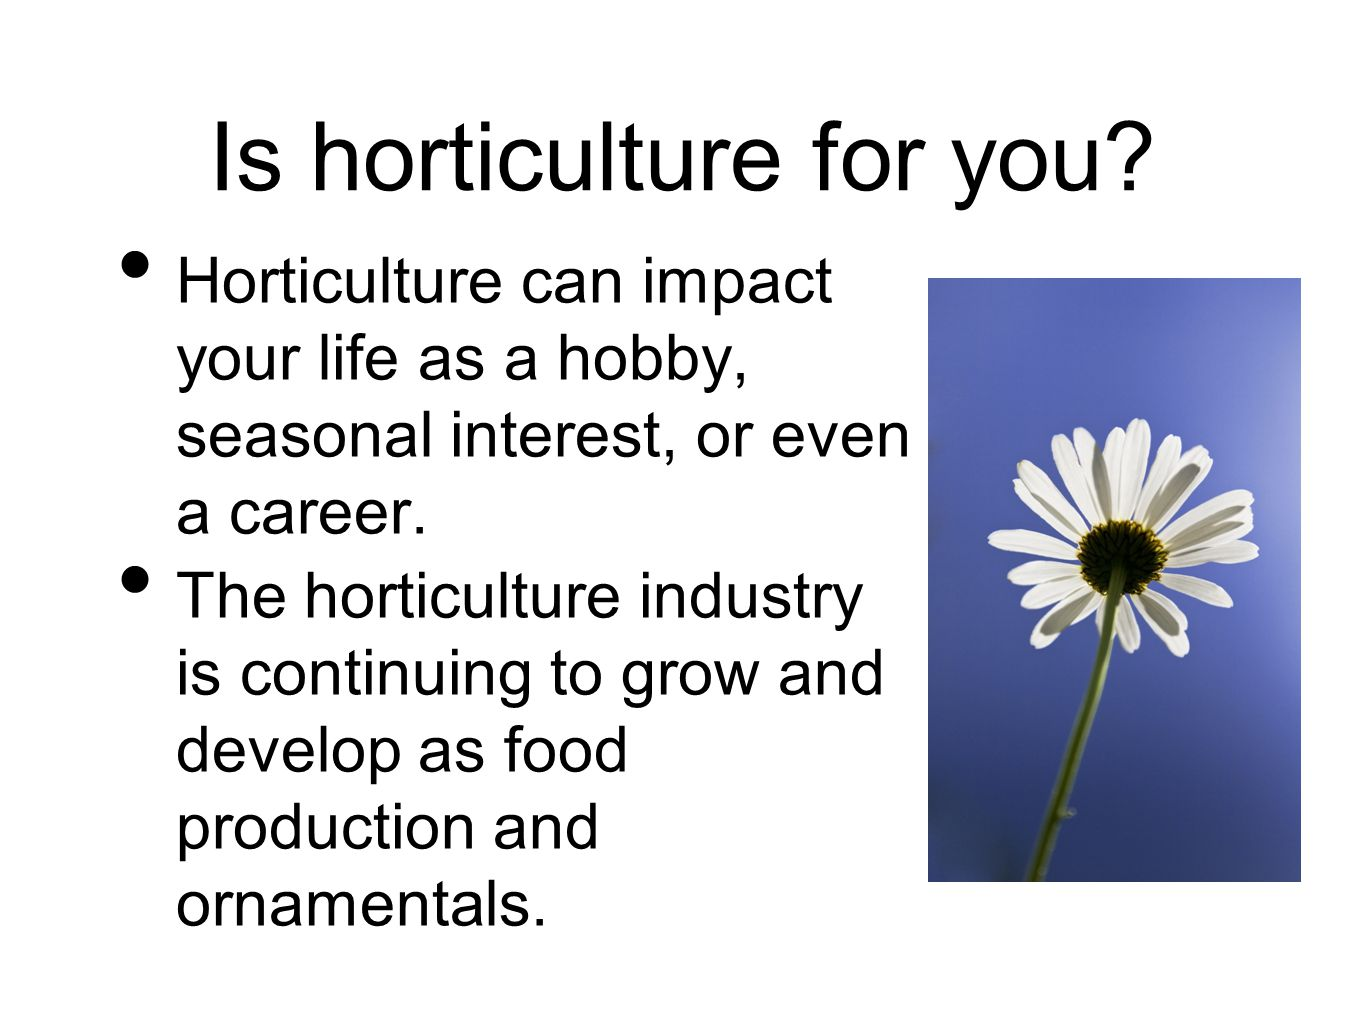 Is horticulture for you? Horticulture can impact your life as a hobby, seasonal interest, or even a career. The horticulture industry is continuing to